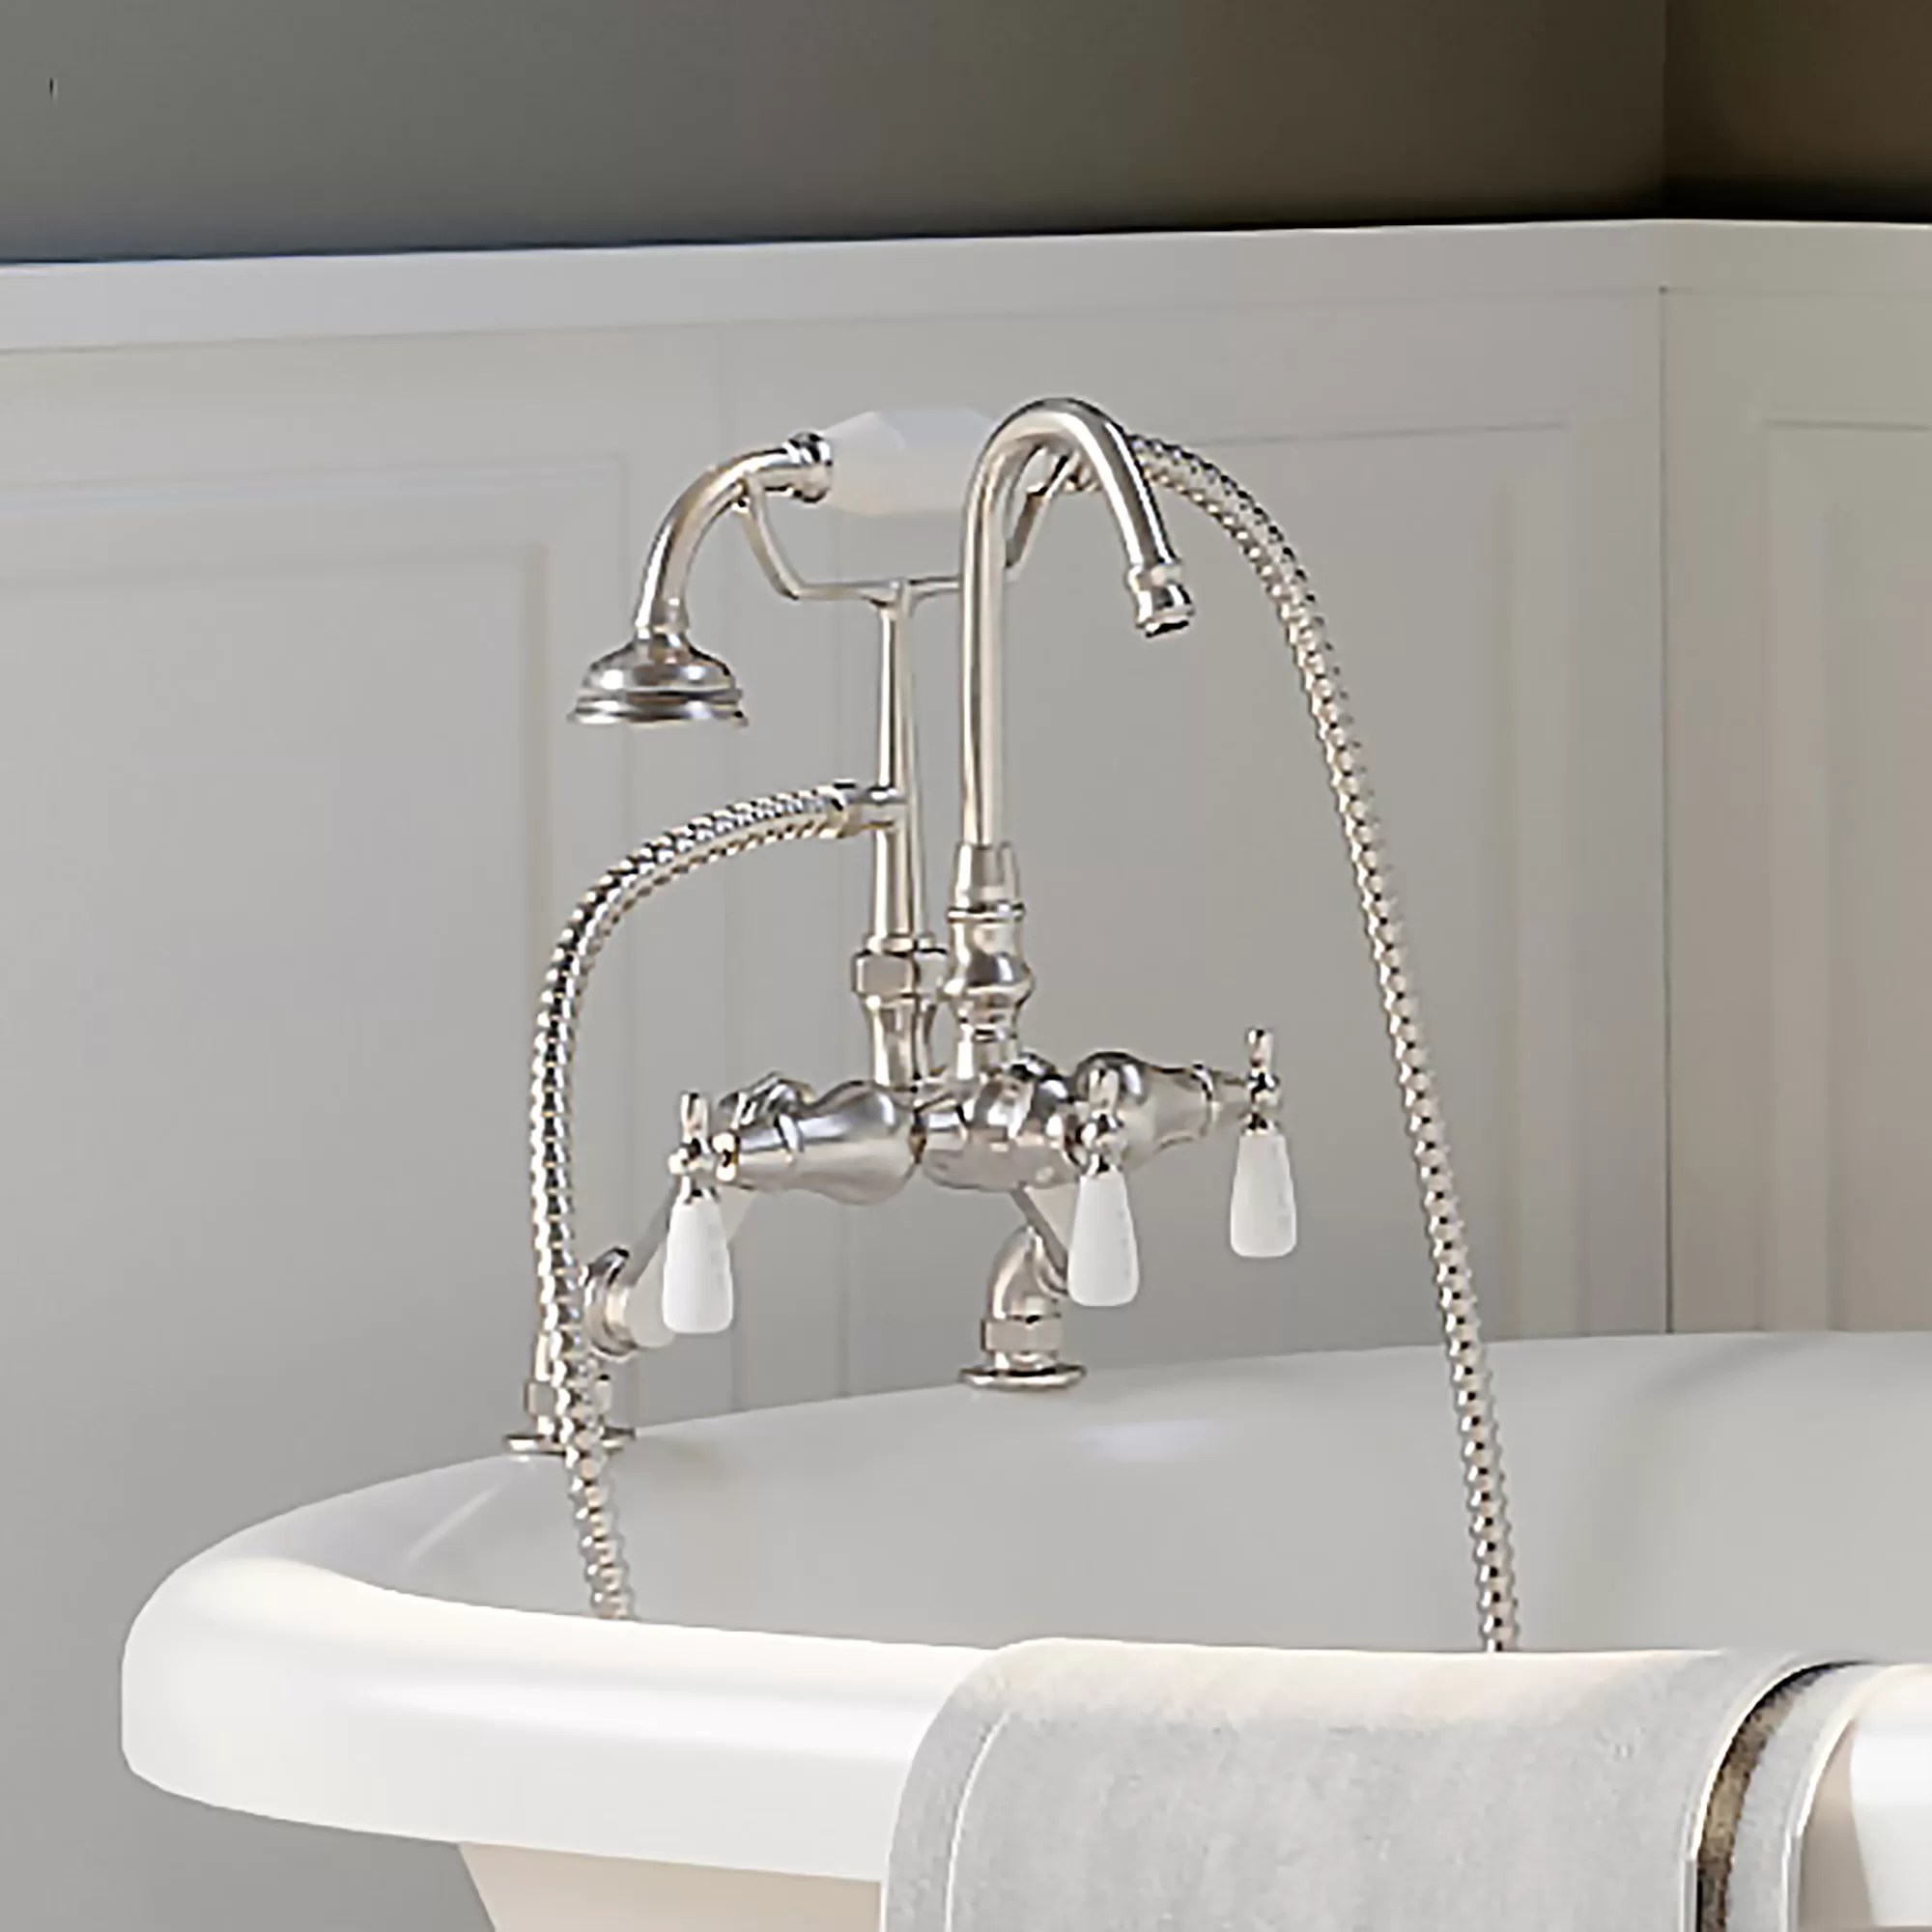 triple handle deck mounted clawfoot tub faucet with diverter and handshower